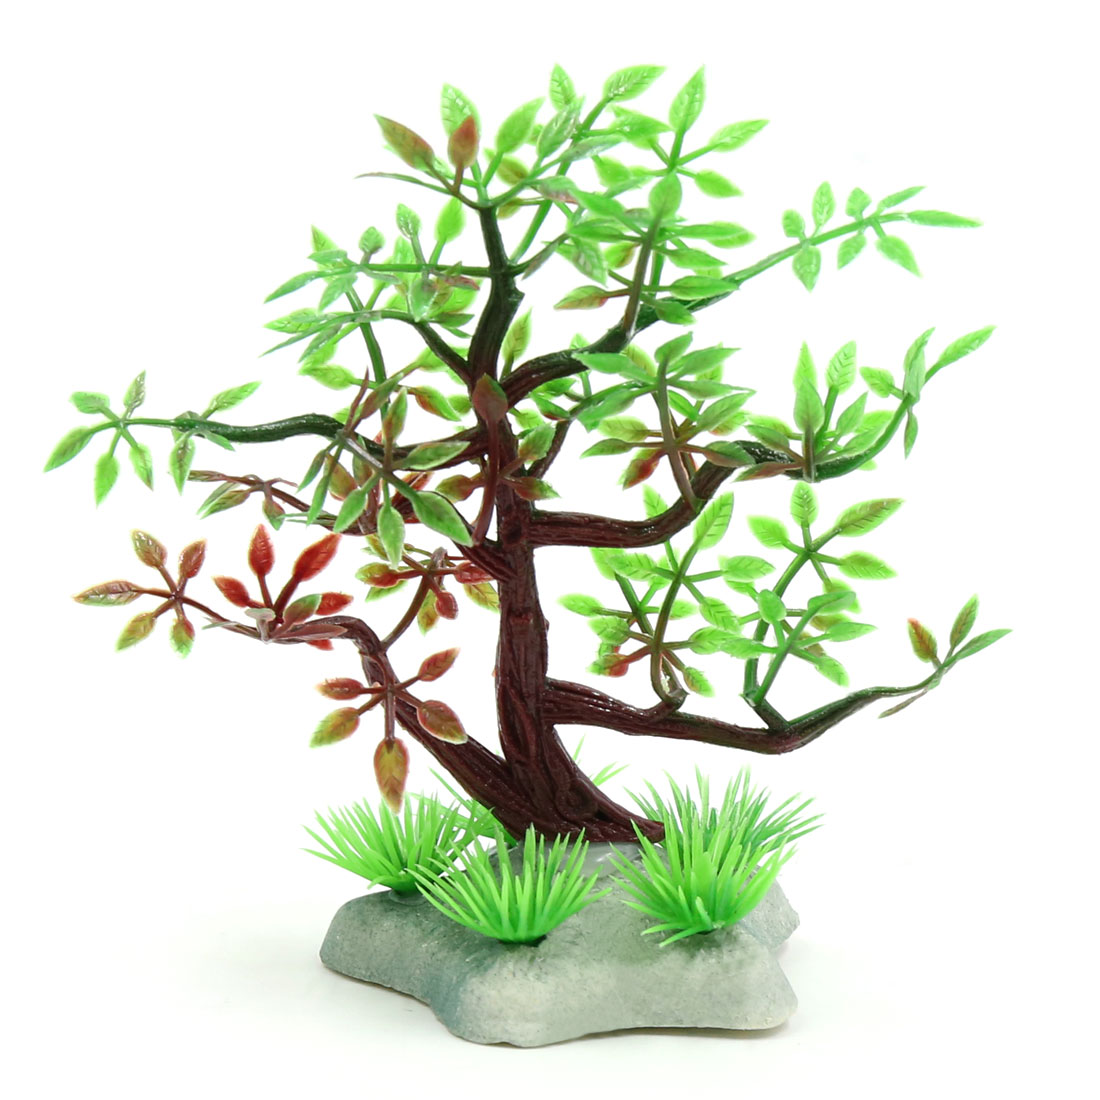 Plastic Mini Lifelike Tree Aquarium Betta Tank Fishbowl Landscapes Decors